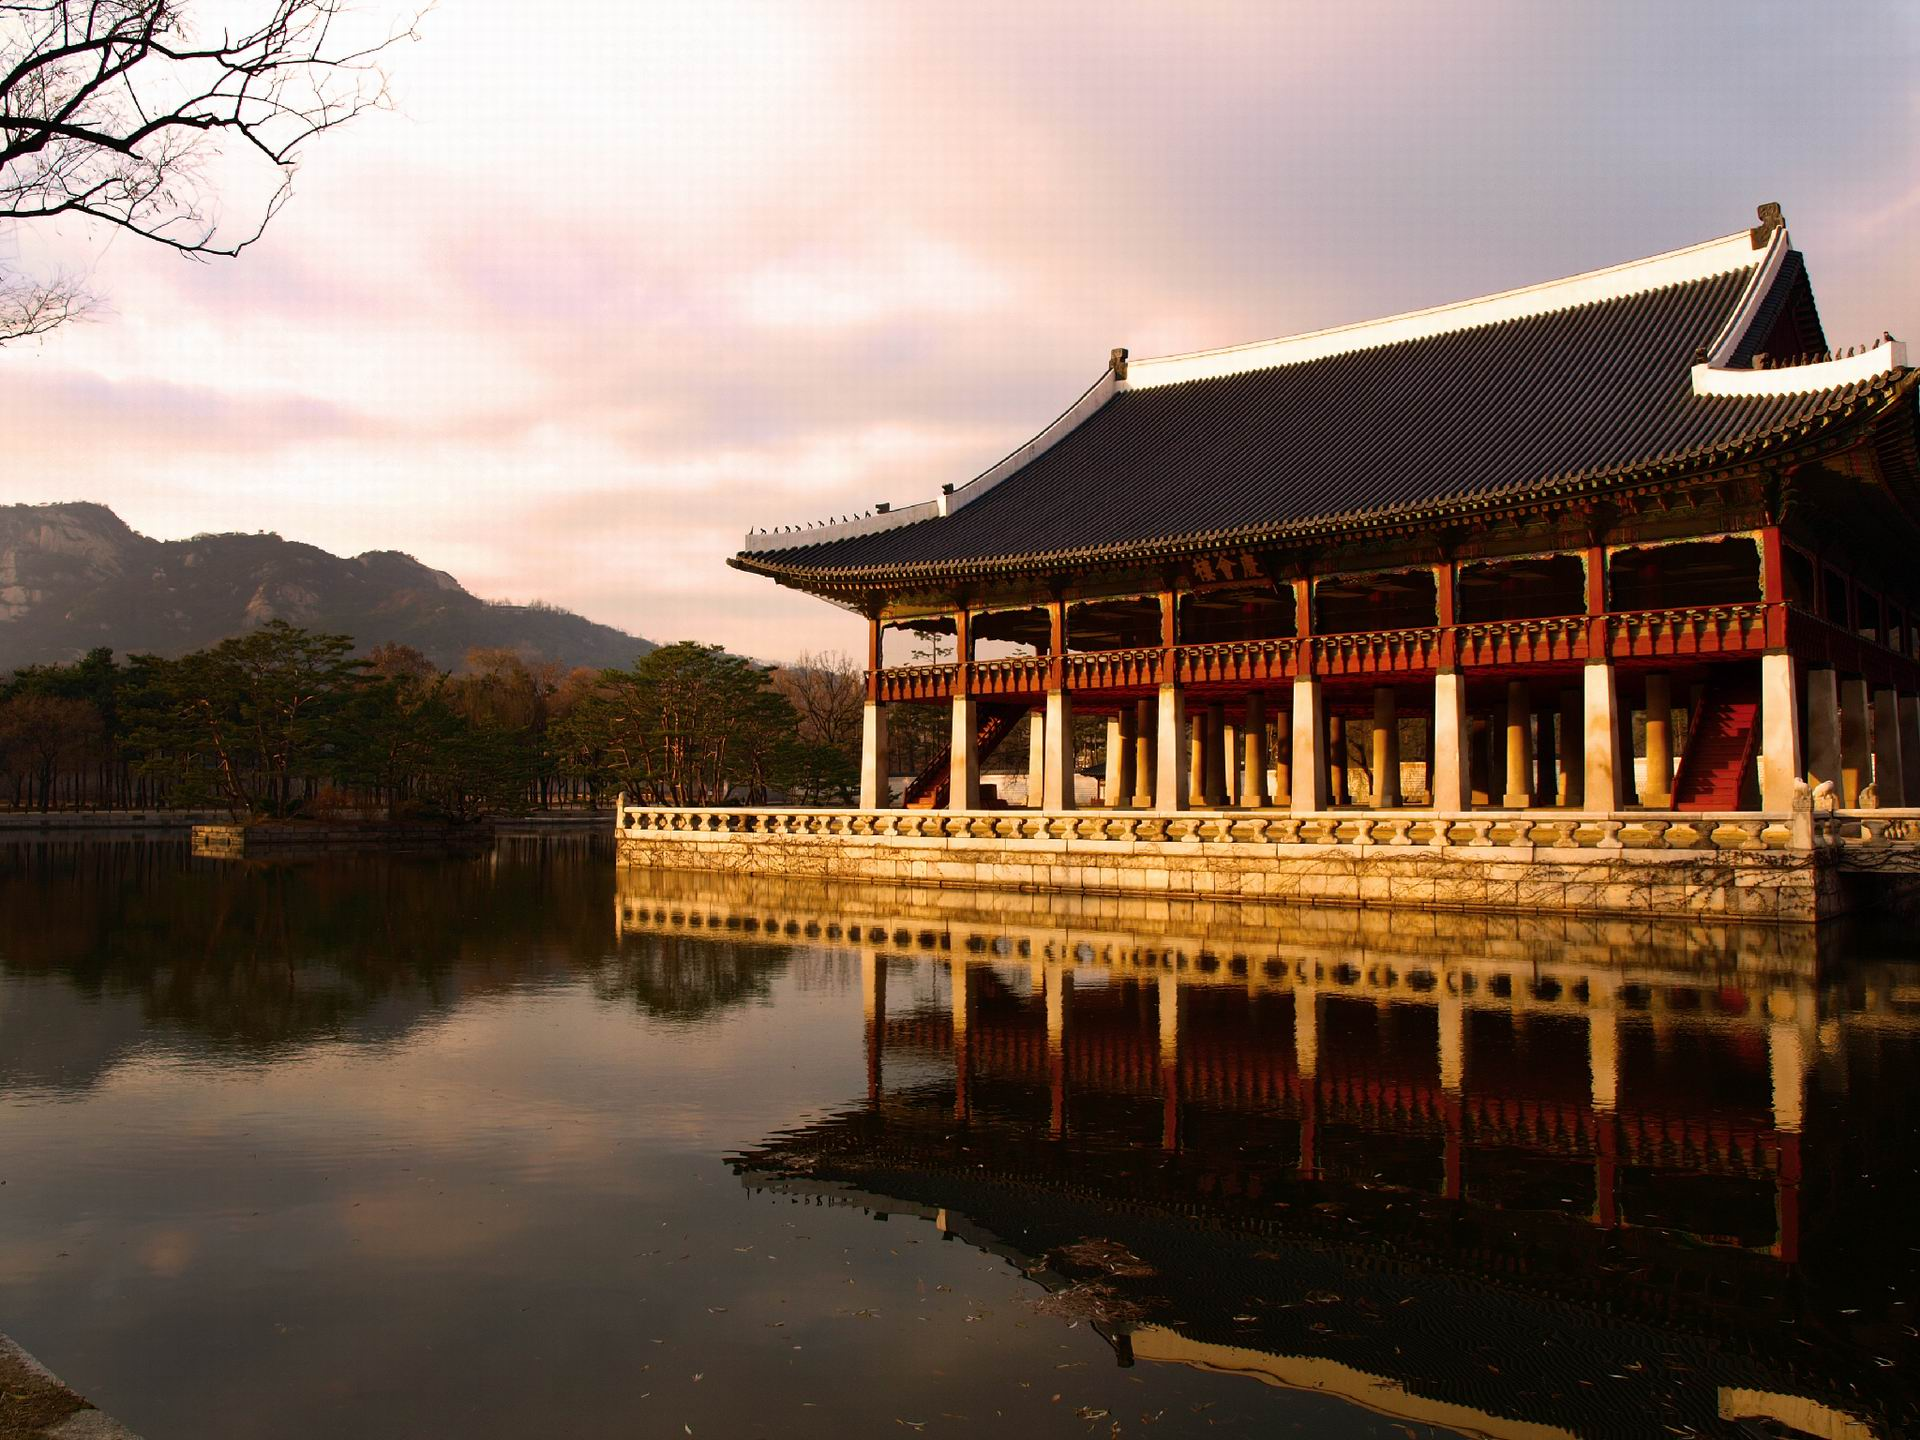 Places to Visit in Korea, Top 10 Places to Visit in Korea (Updated 2021), Phenomenal Place